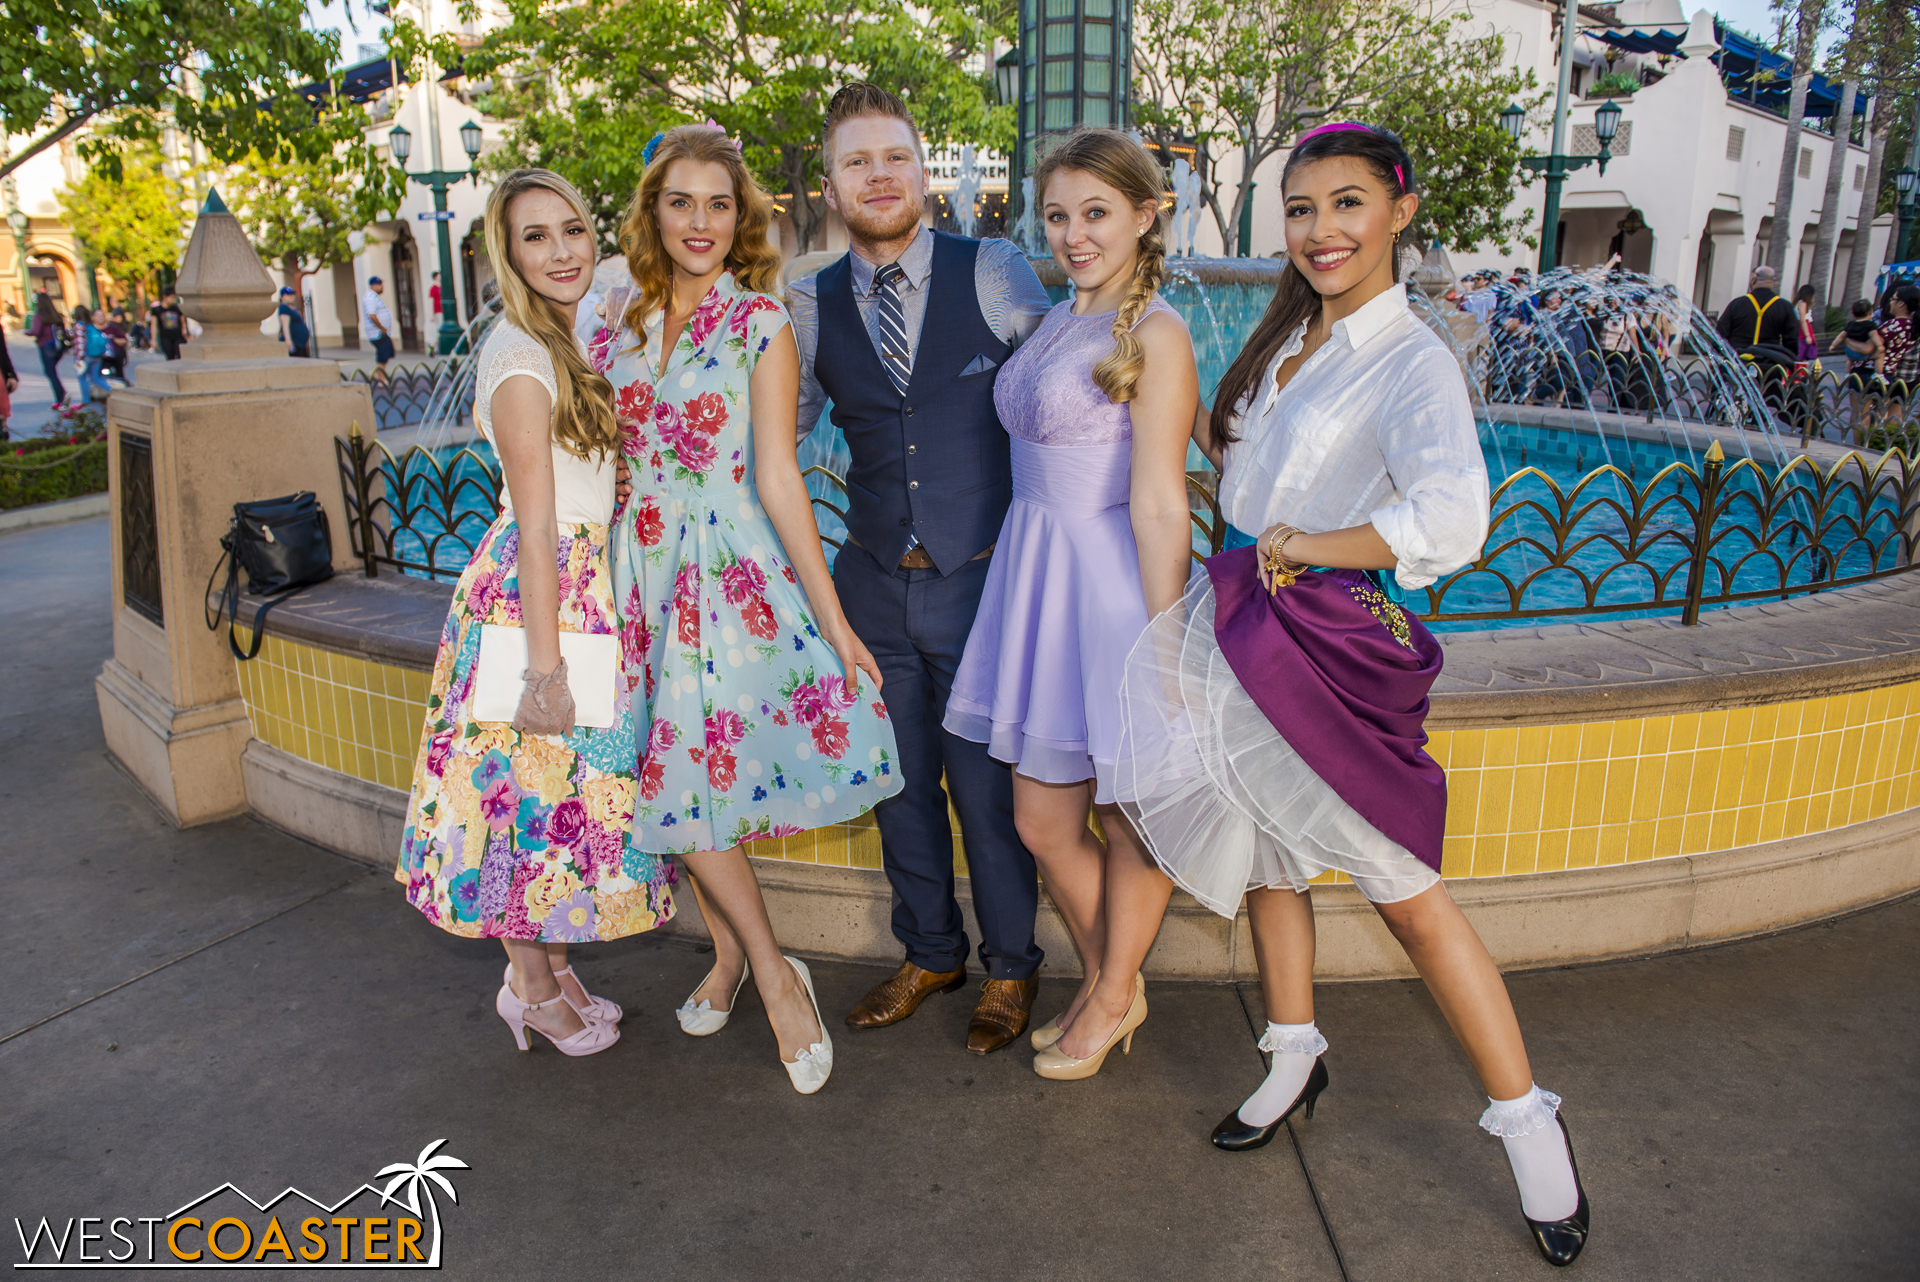 Esmeralda, Rapunzel, and friends (perhaps including  Enchanted 's Giselle?).